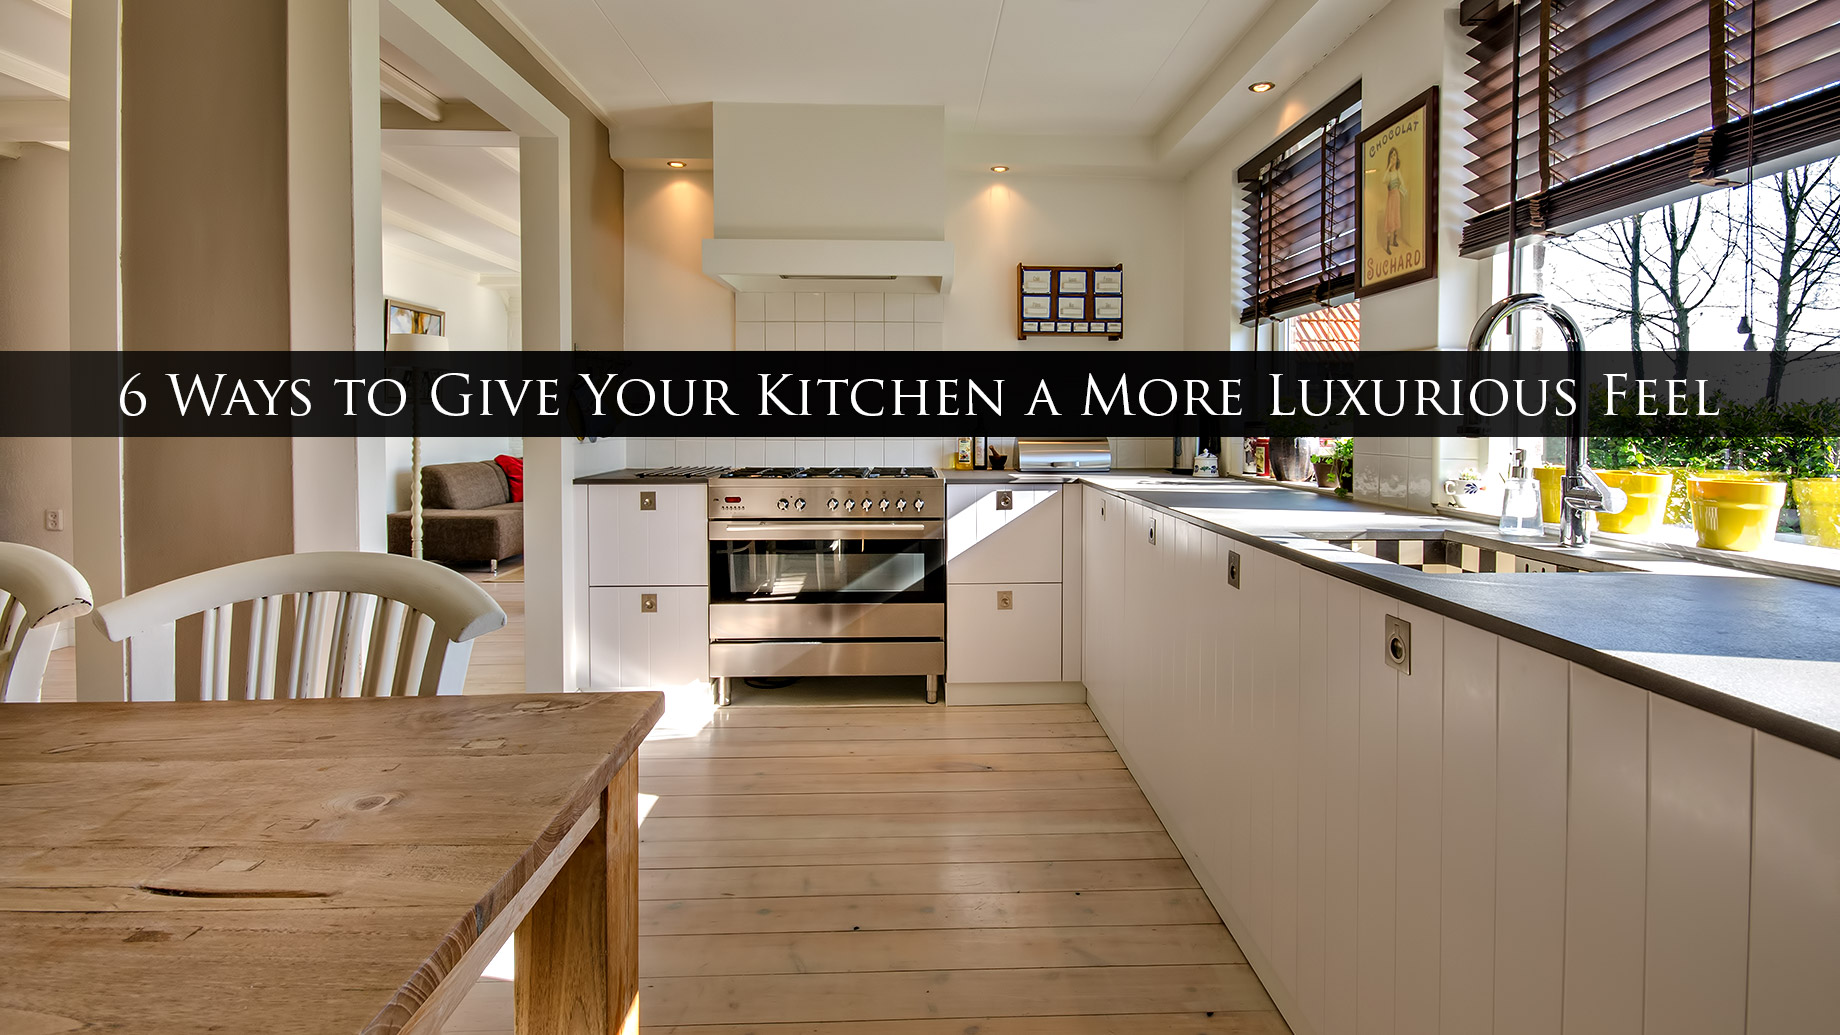 6 Ways to Give Your Kitchen a More Luxurious Feel